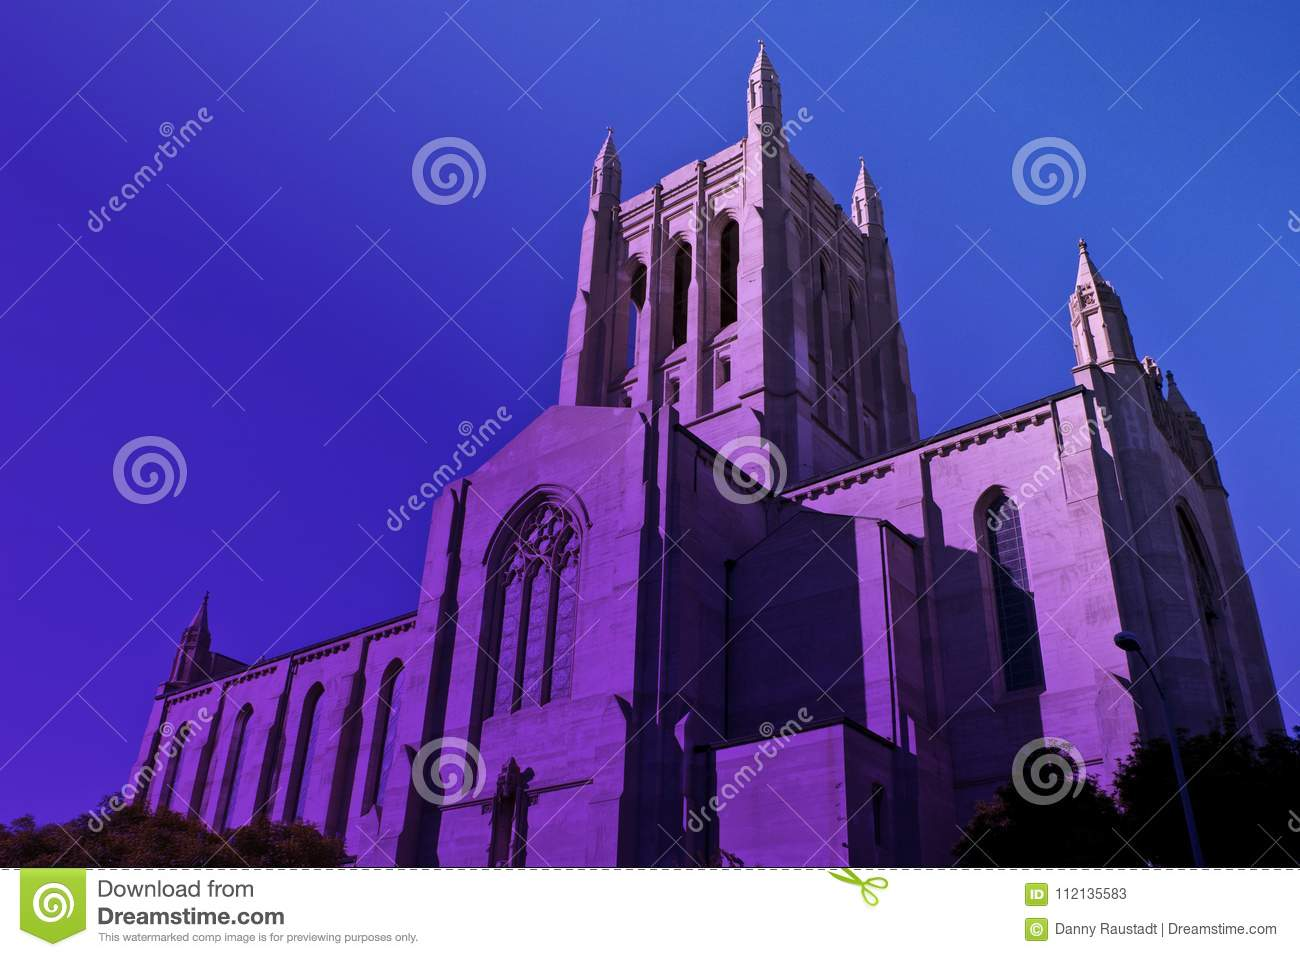 Tall downtown Los Angeles Catholic Church in twilight purple haze.